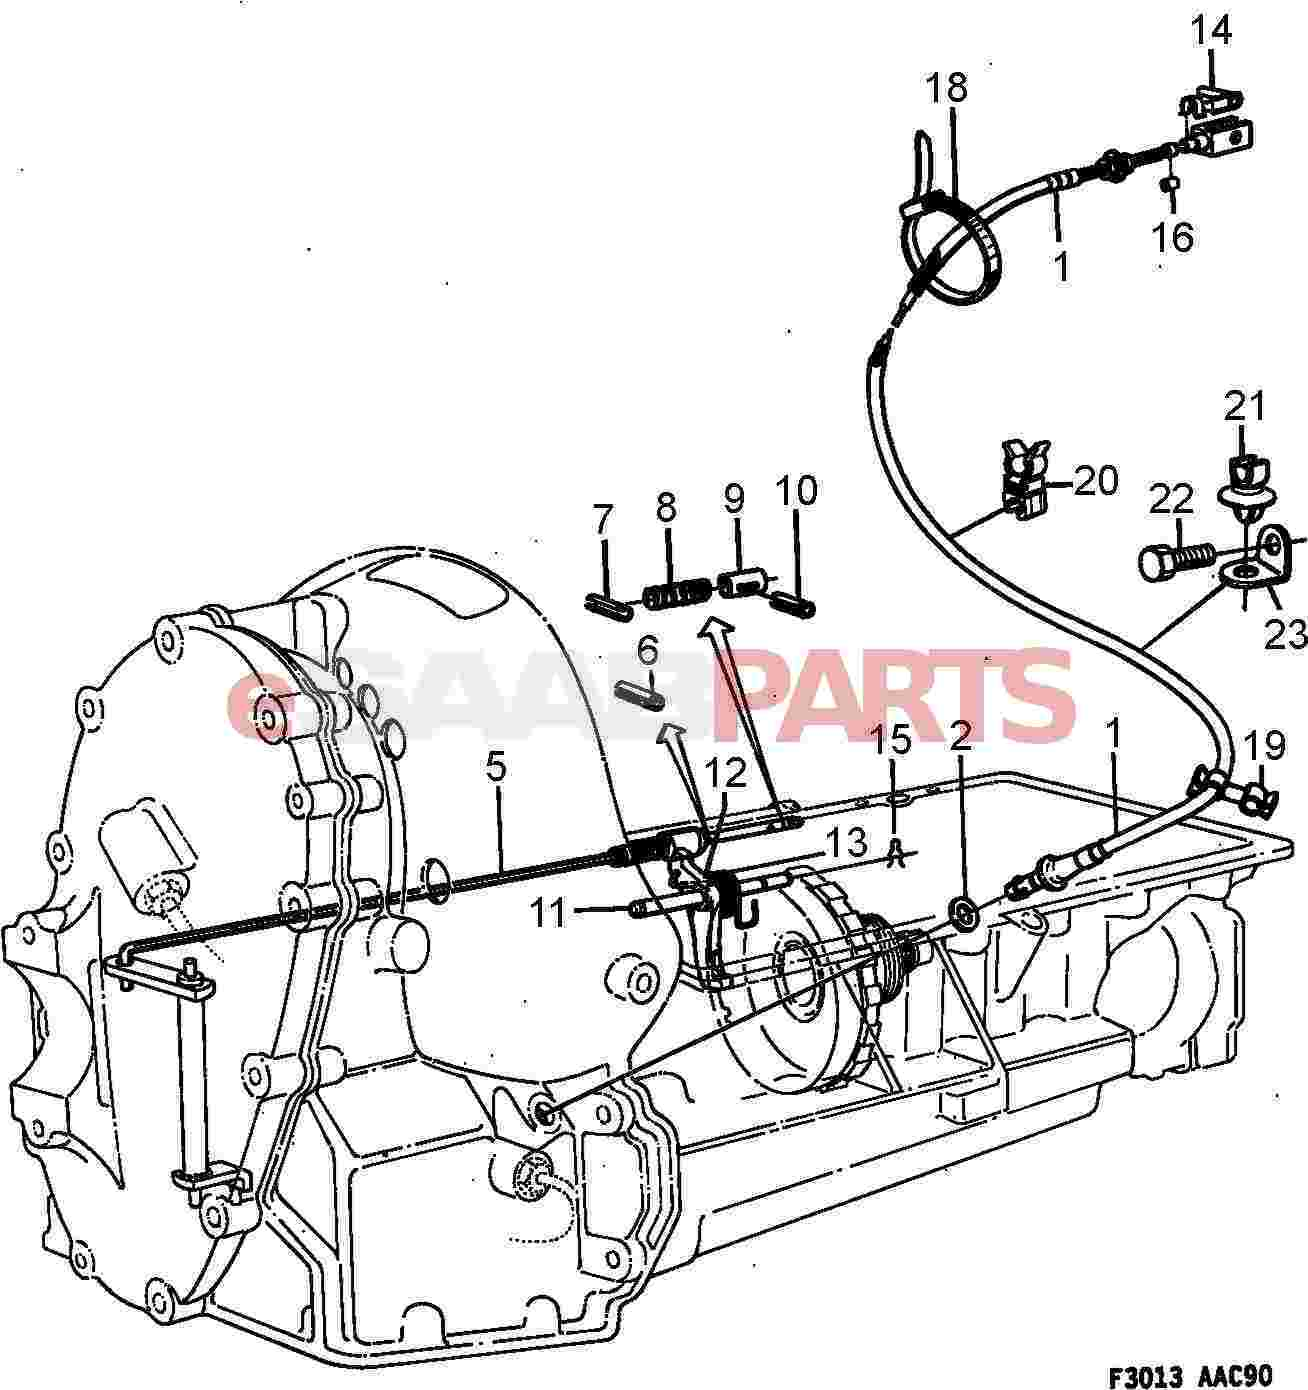 1995 Ford Econoline Van Engine Fuse Box Diagram further 1996 Saab Wiring Diagrams further Saab 9000 Aero Engine Diagram Html as well 1995 Saab 9000 Parts Diagram likewise 13266316. on 1995 saab 900 wiring diagram